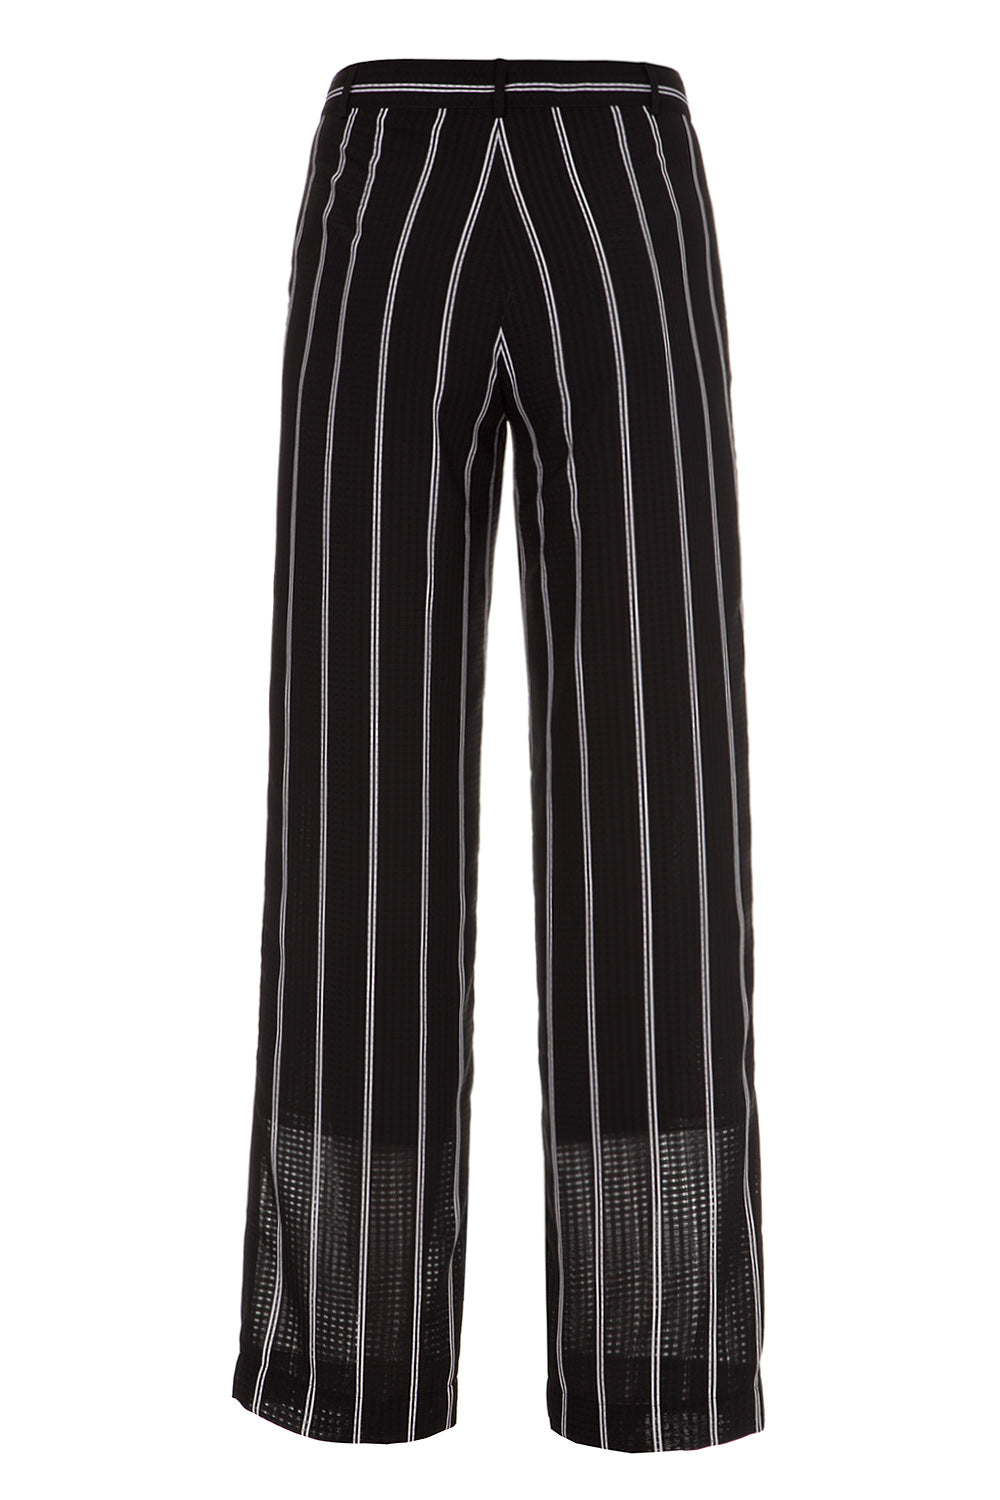 Black striped pants